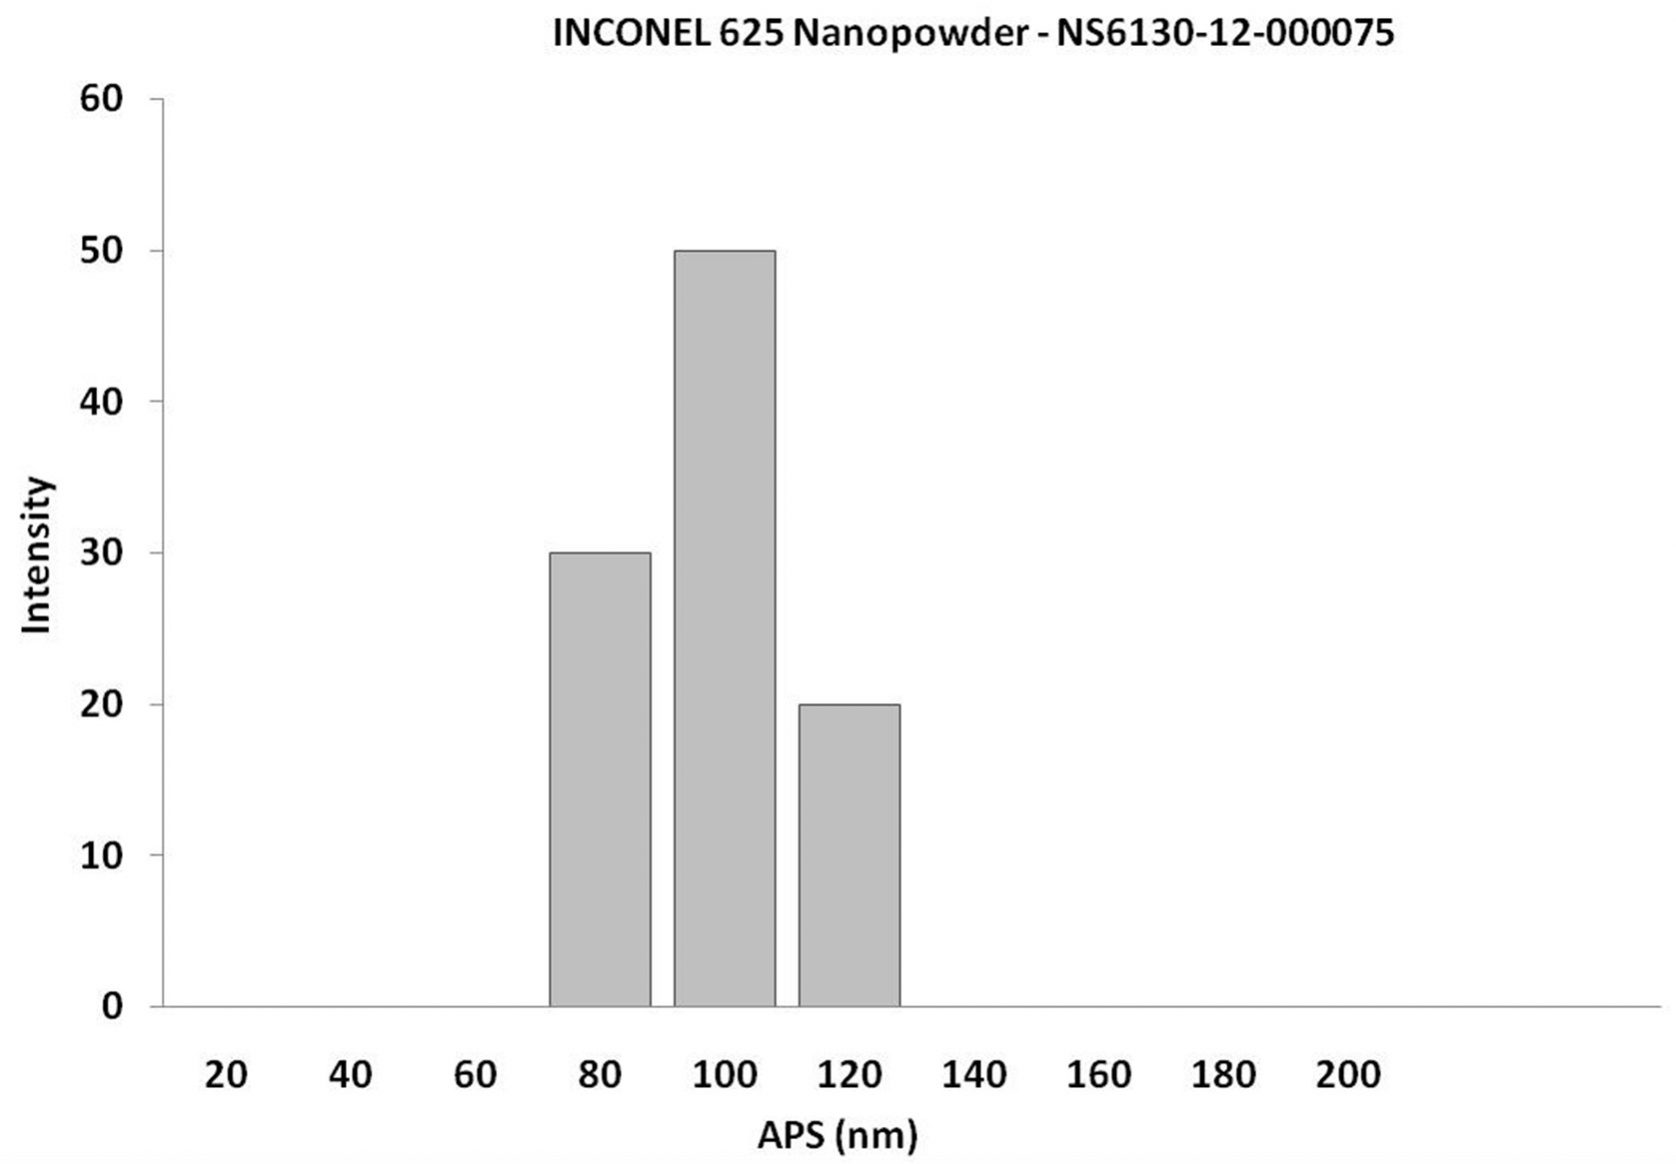 Particles Size Analysis - INCONEL 625 Nickel Alloy Nanopowder